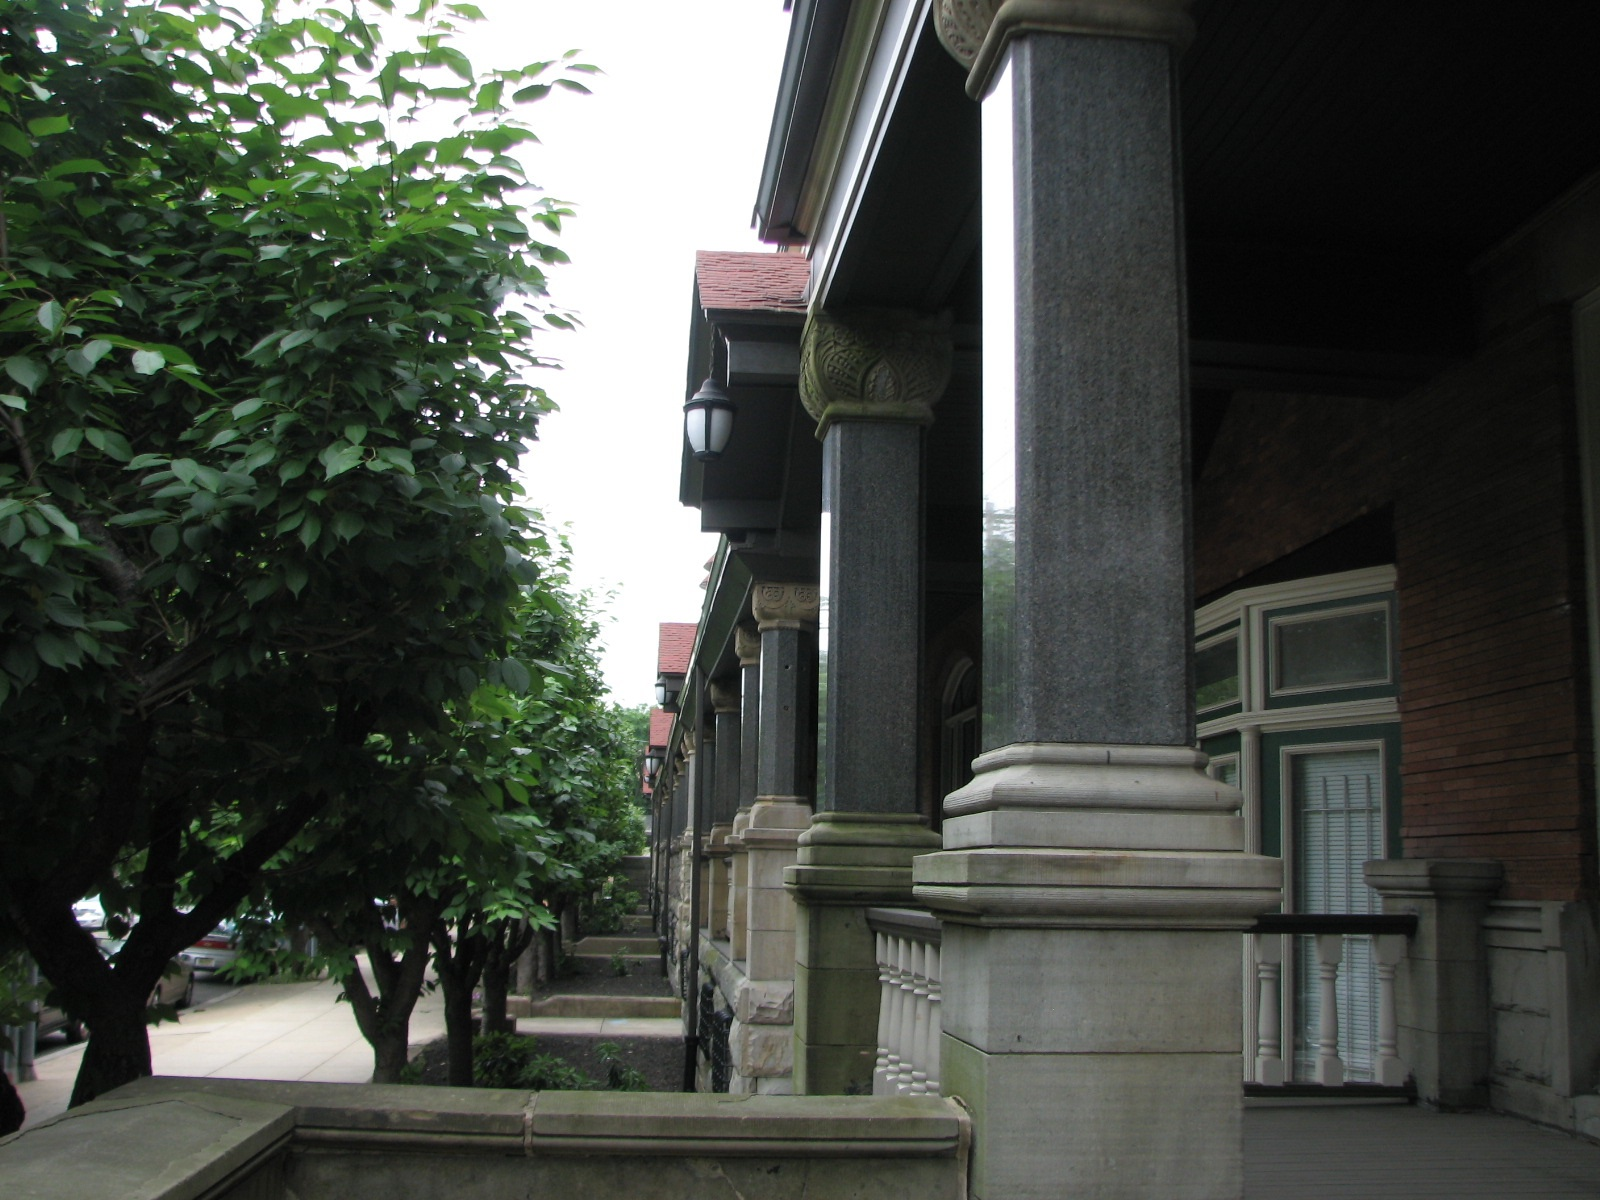 Smooth columns and porches welcome visitors to the apartment buildings.